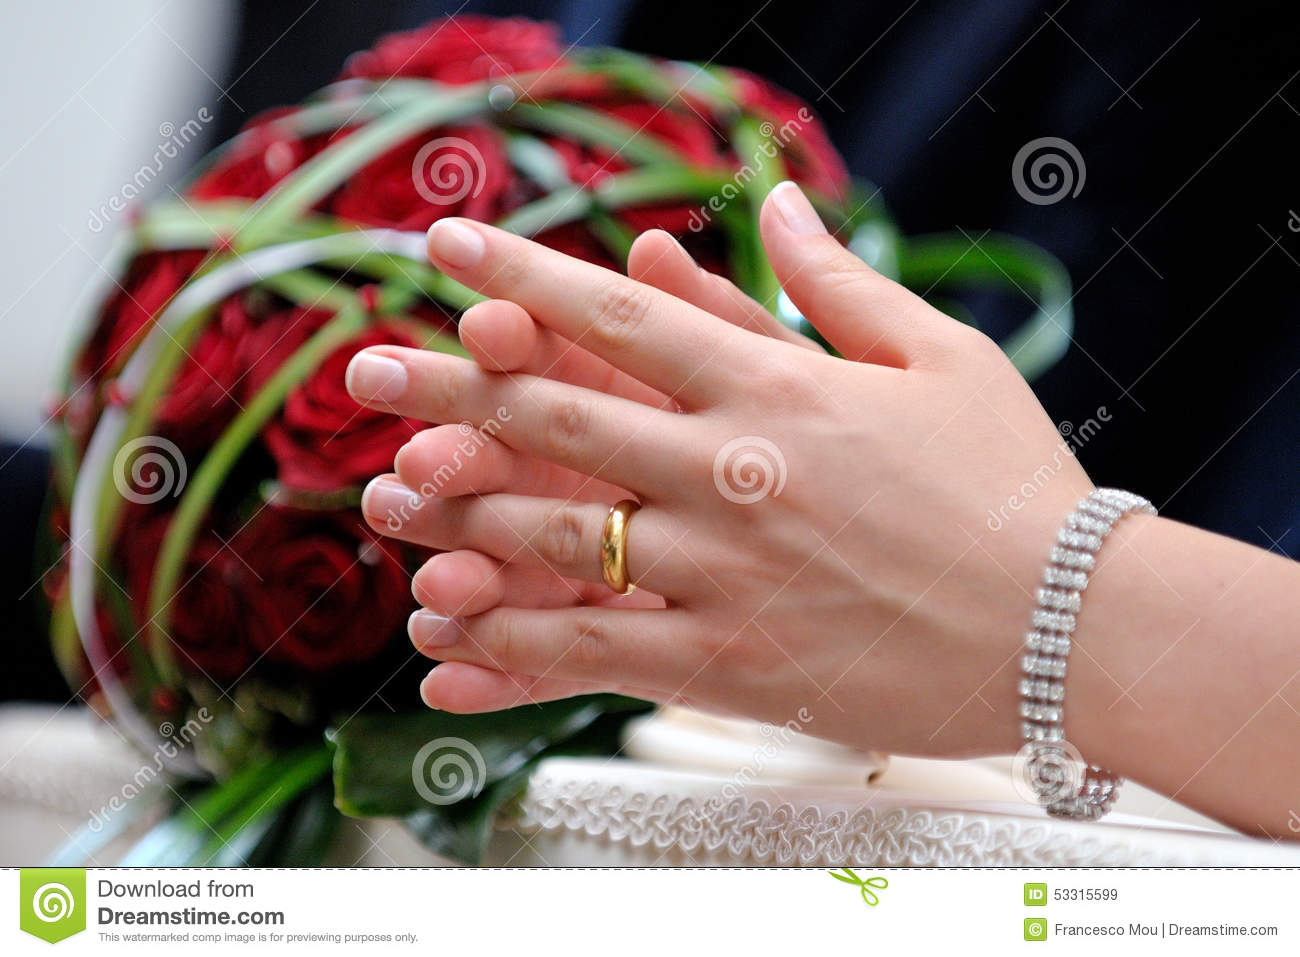 Hands in marriage stock image. Image of promise, marriage - 53315599